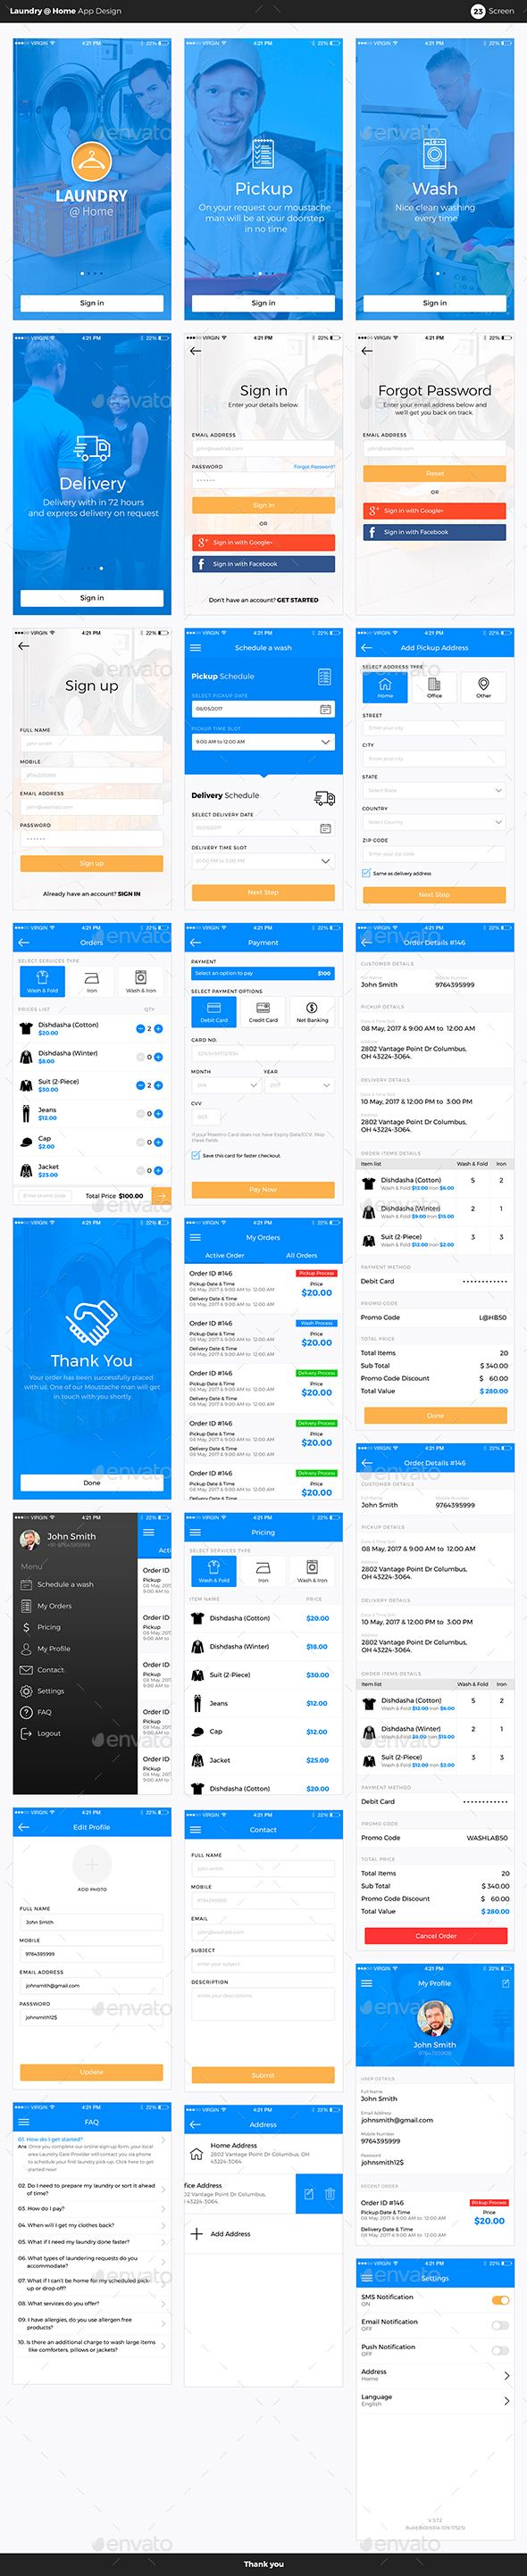 Laundry @ Home App UI Kit - #User Interfaces #Web Elements Download here: https://graphicriver.net/item/laundry-home-app-ui-kit/20042133?ref=alena994